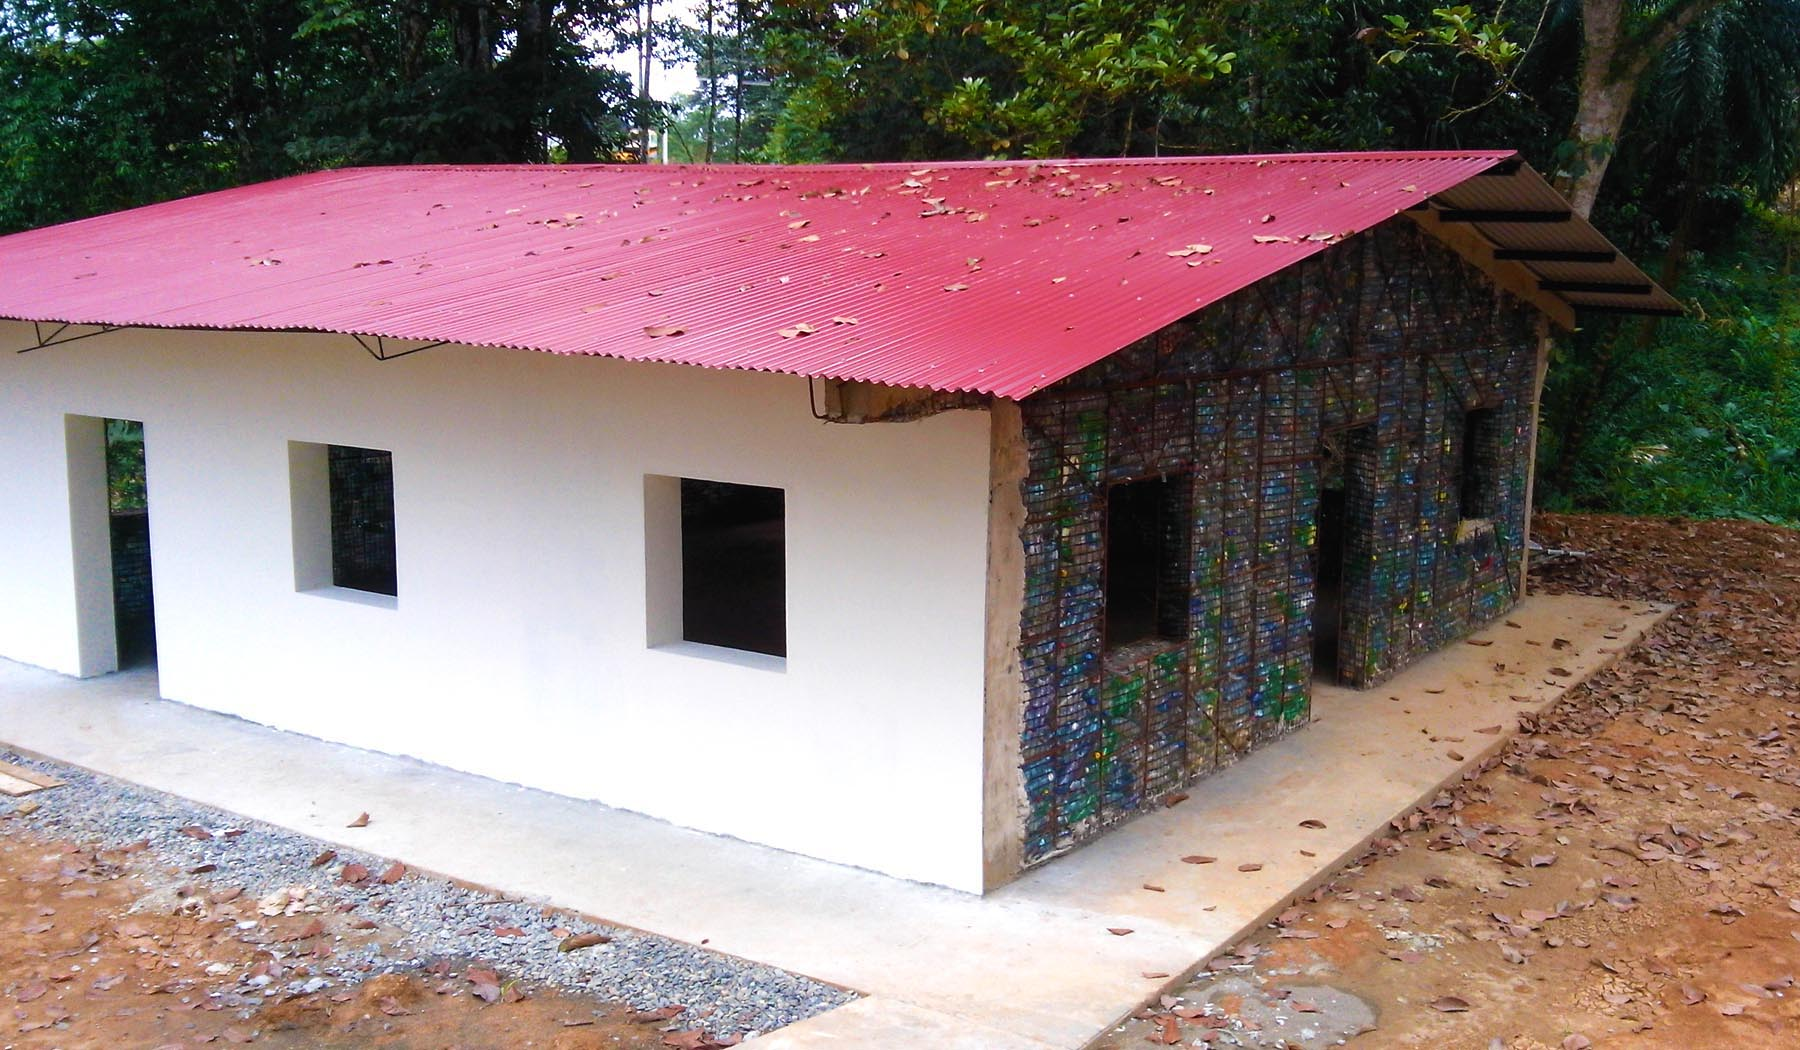 Worlds first Plastic Bottle Village to recycle over a